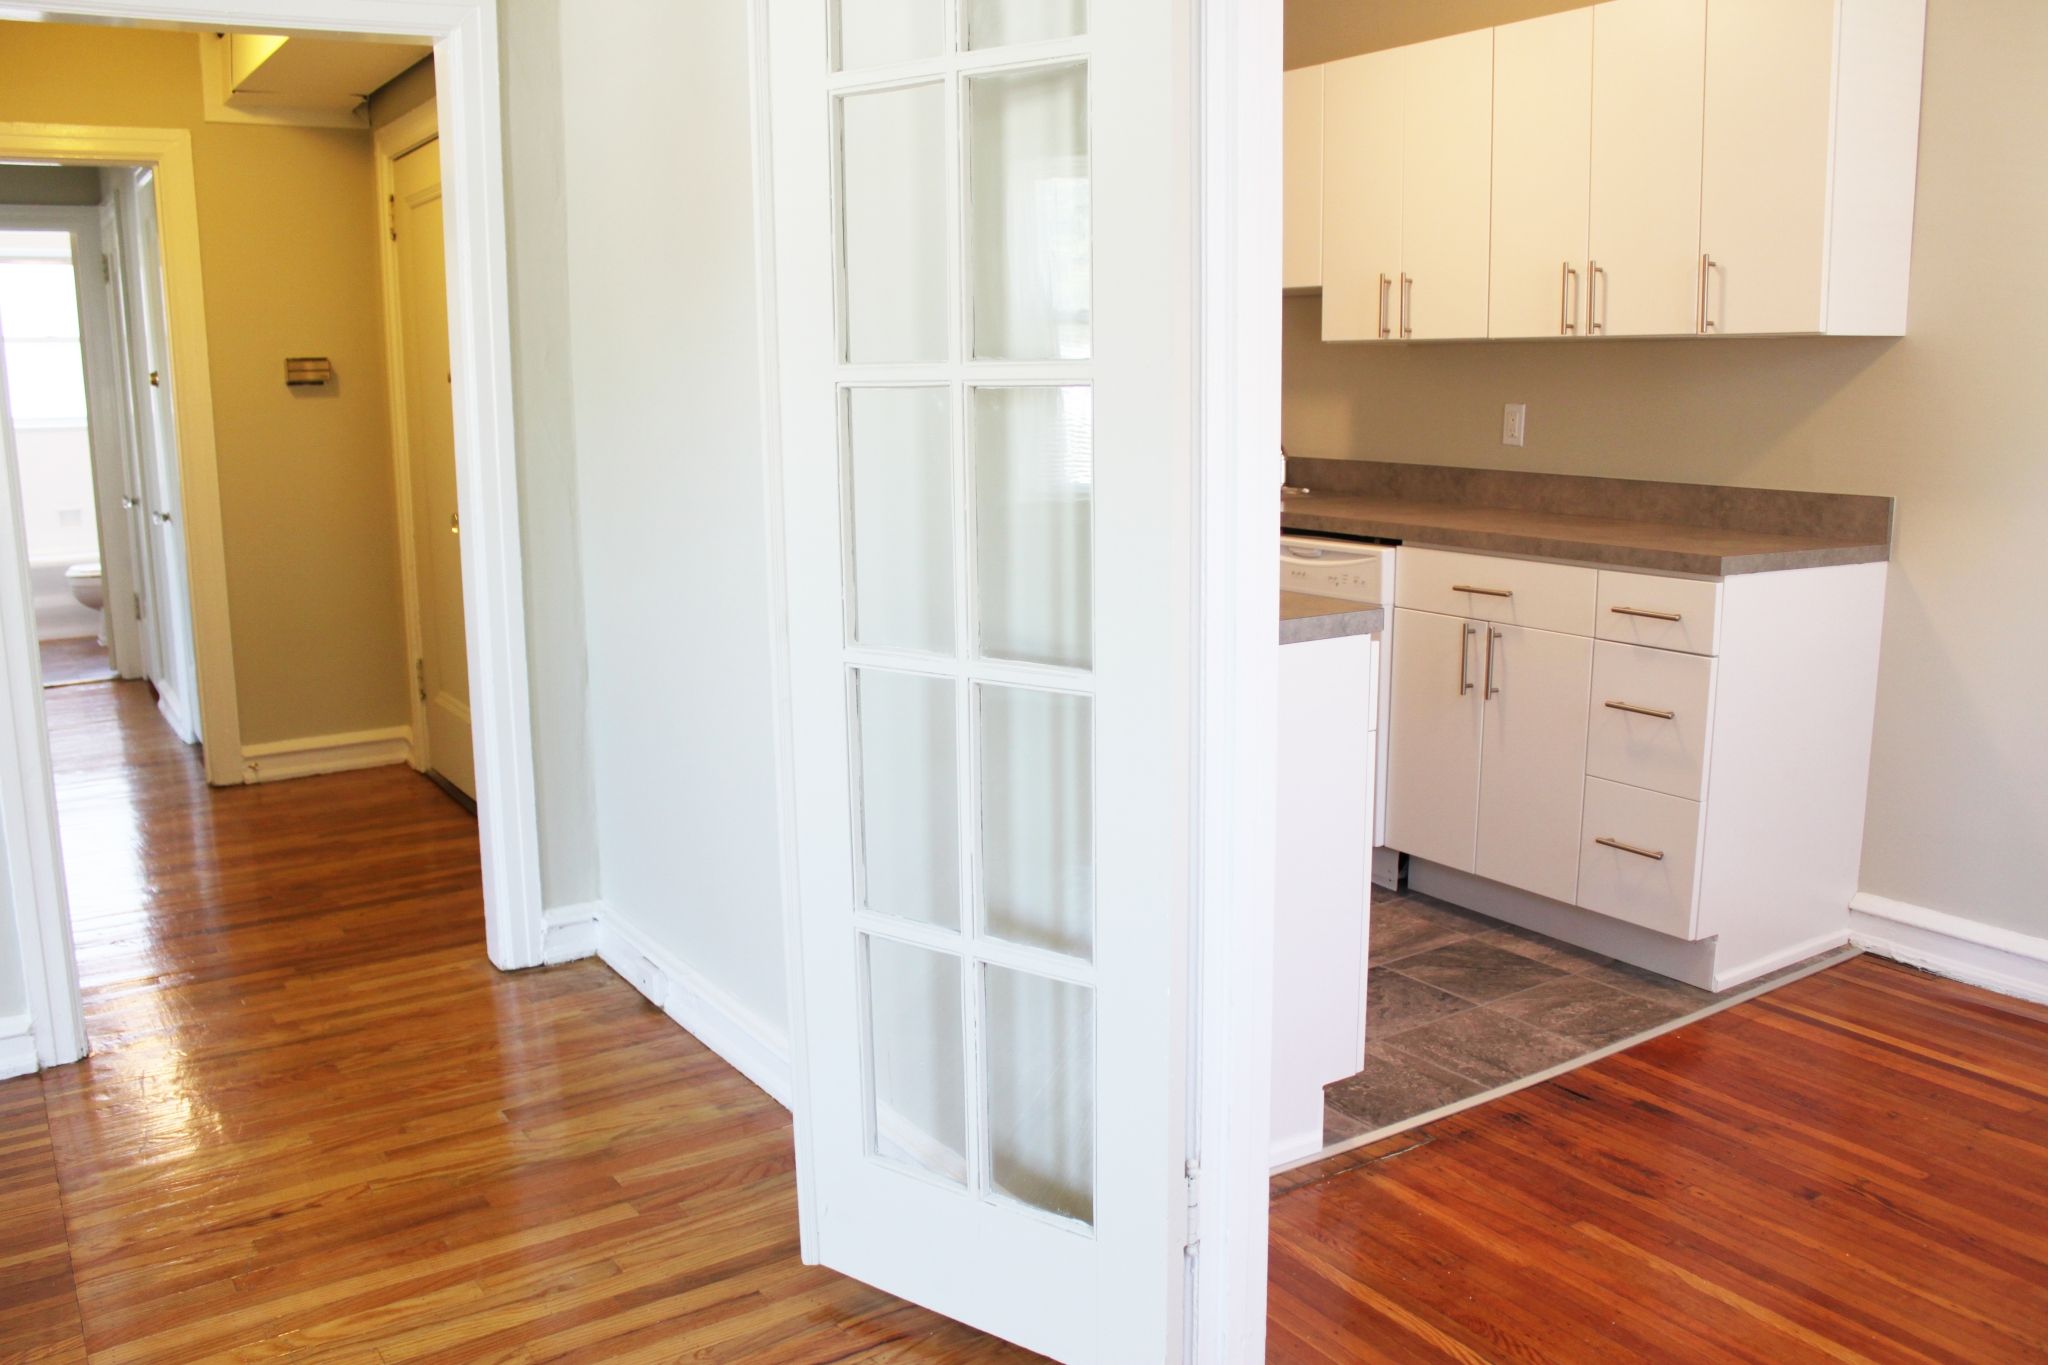 Spacious Kitchen   Apartments for rent in Ardmore, PA   Suburban Court Apartments